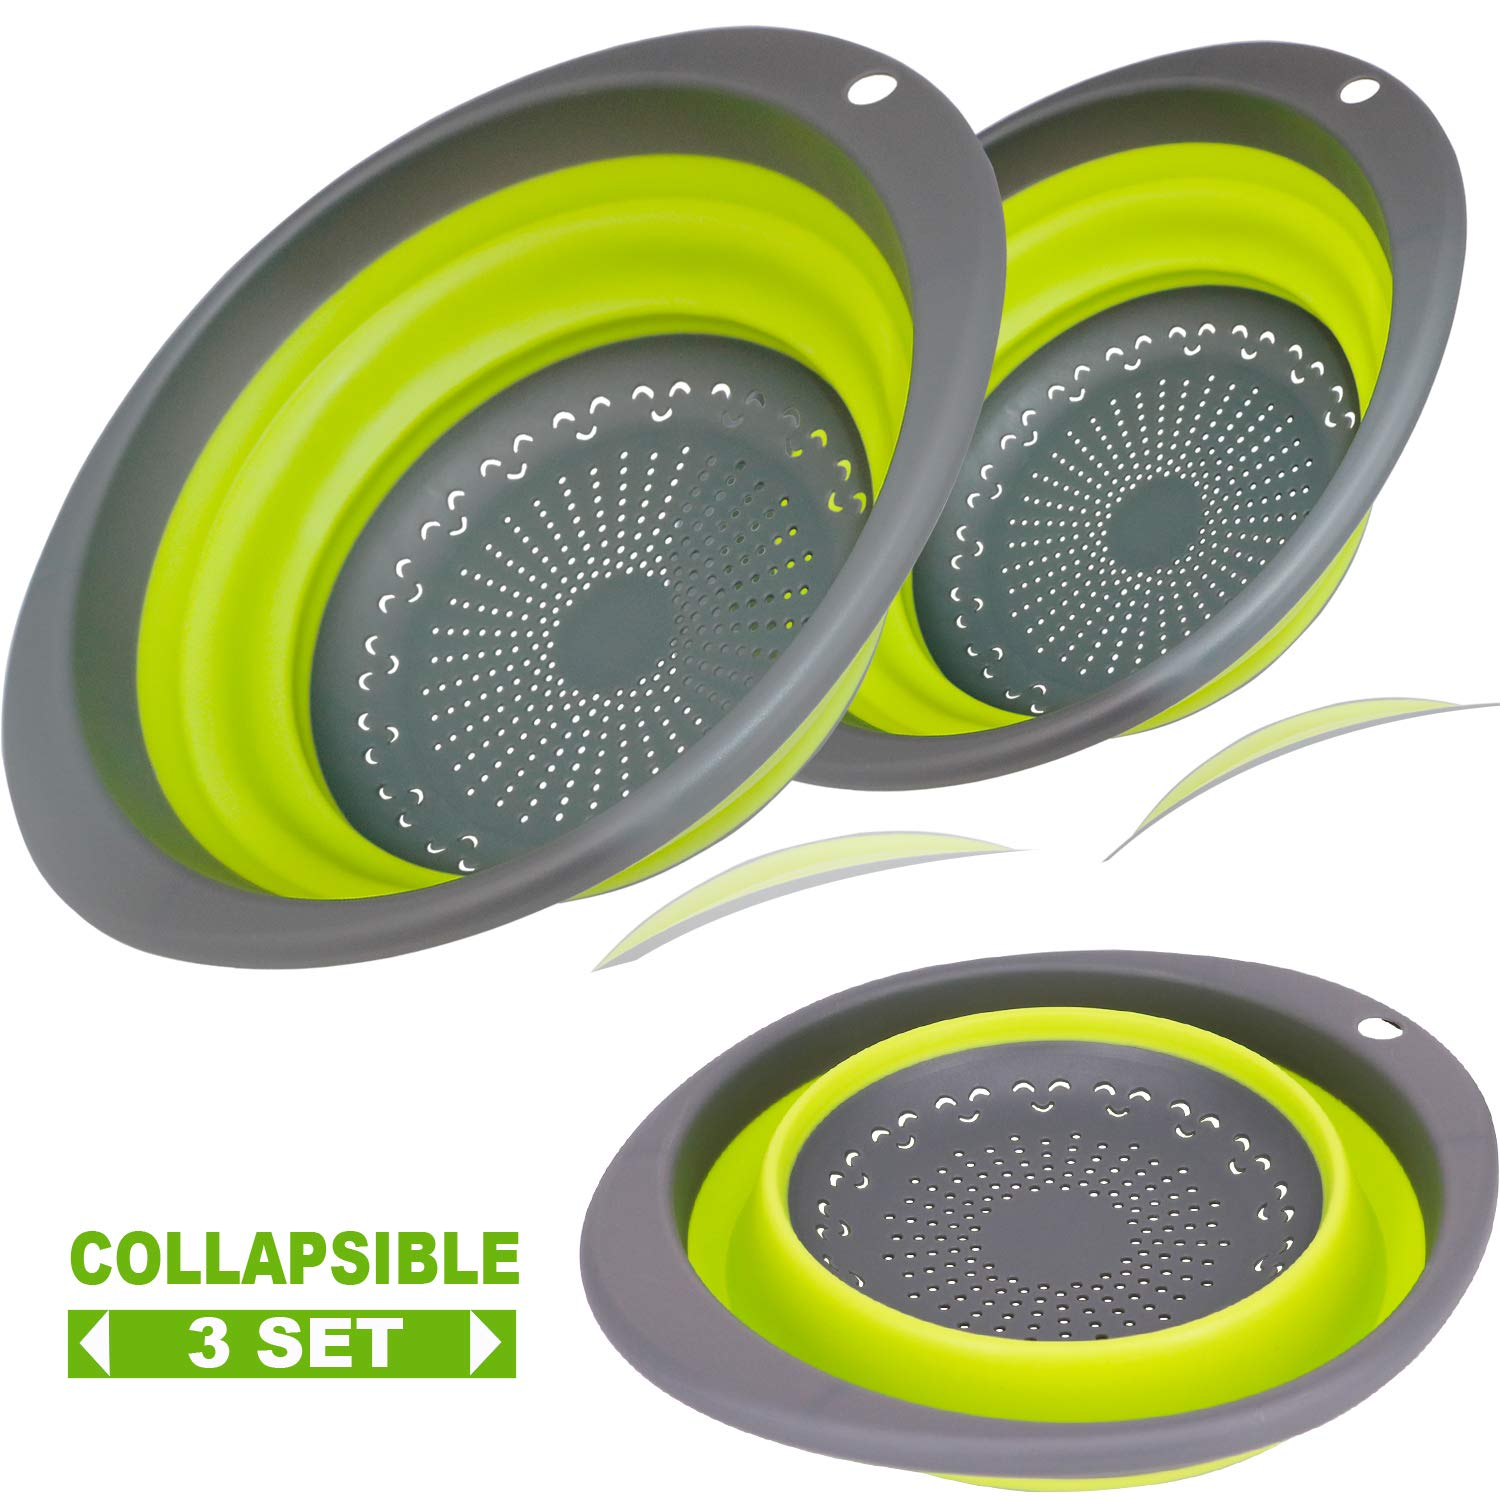 【2019 New Version】3-Packs Green Oval Collapsible Colander Set, 2 pcs 4 Quart and 1 pcs 2 Quart - Foldable BPA Free Silicone Kitchen Strainer Kit Perfect for Draining Pasta, Vegetable and fruit